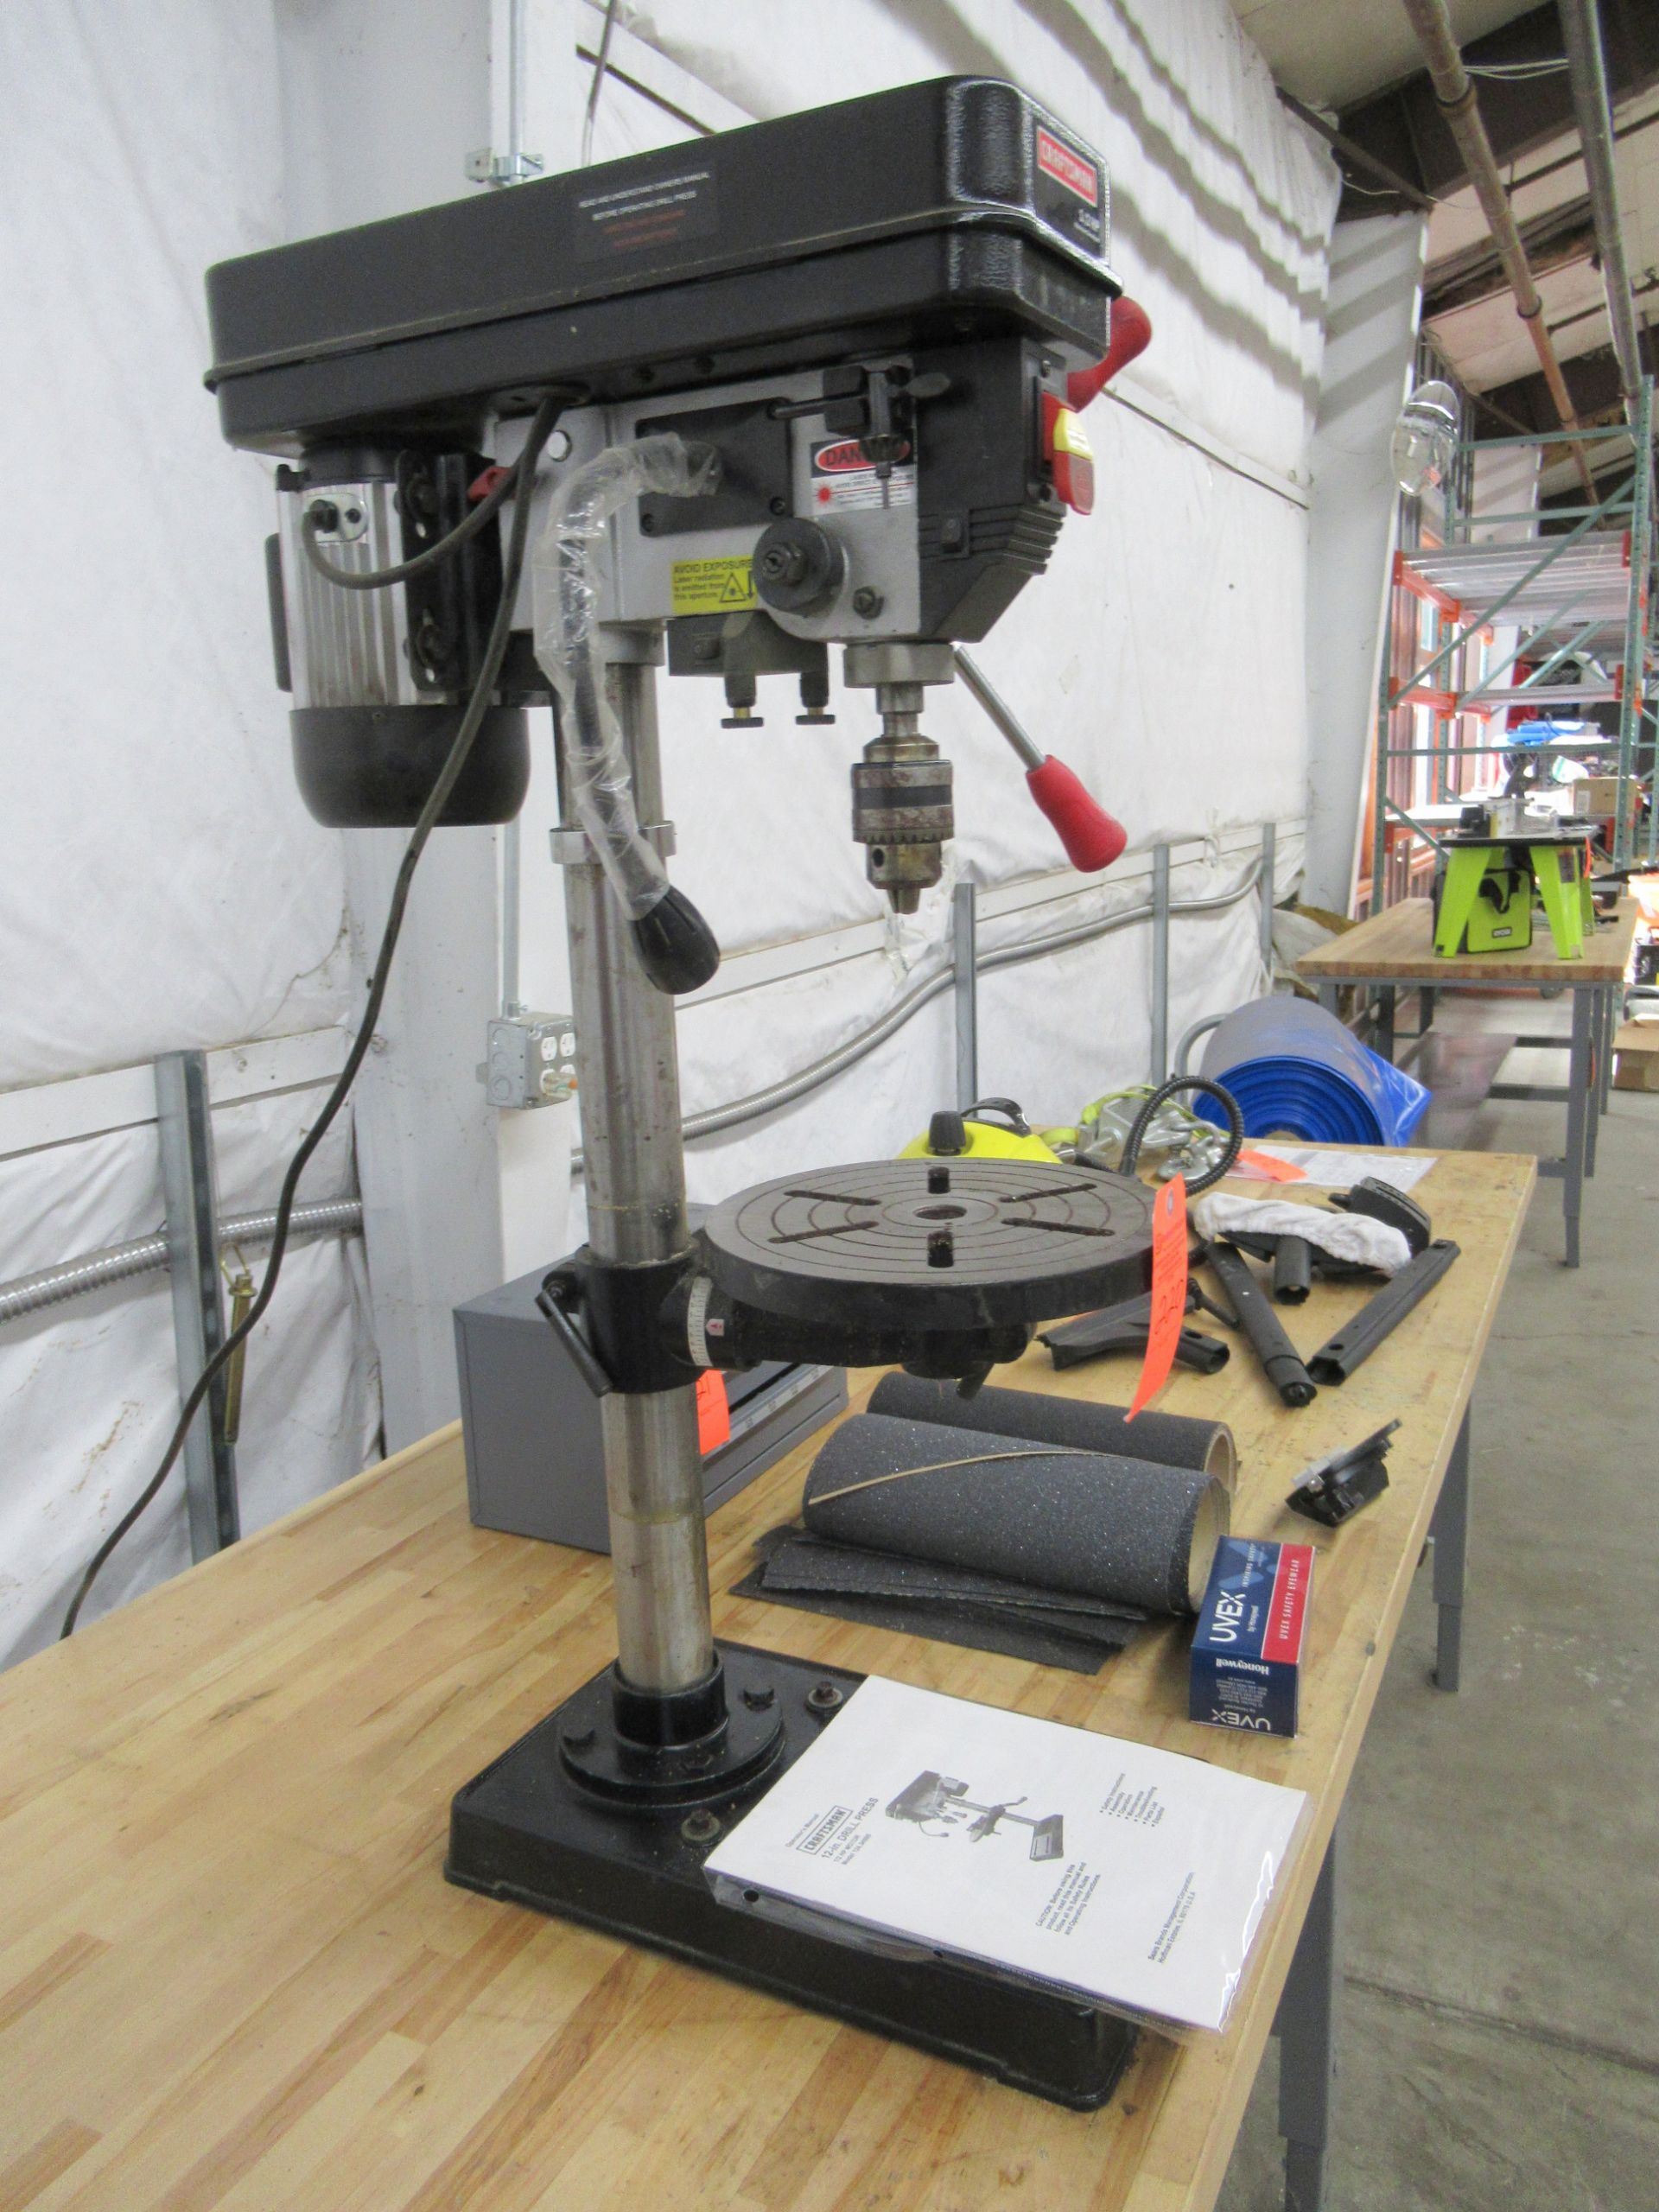 """Lot 220 - Craftsman 34985 12"""" Drill Press with Laser"""